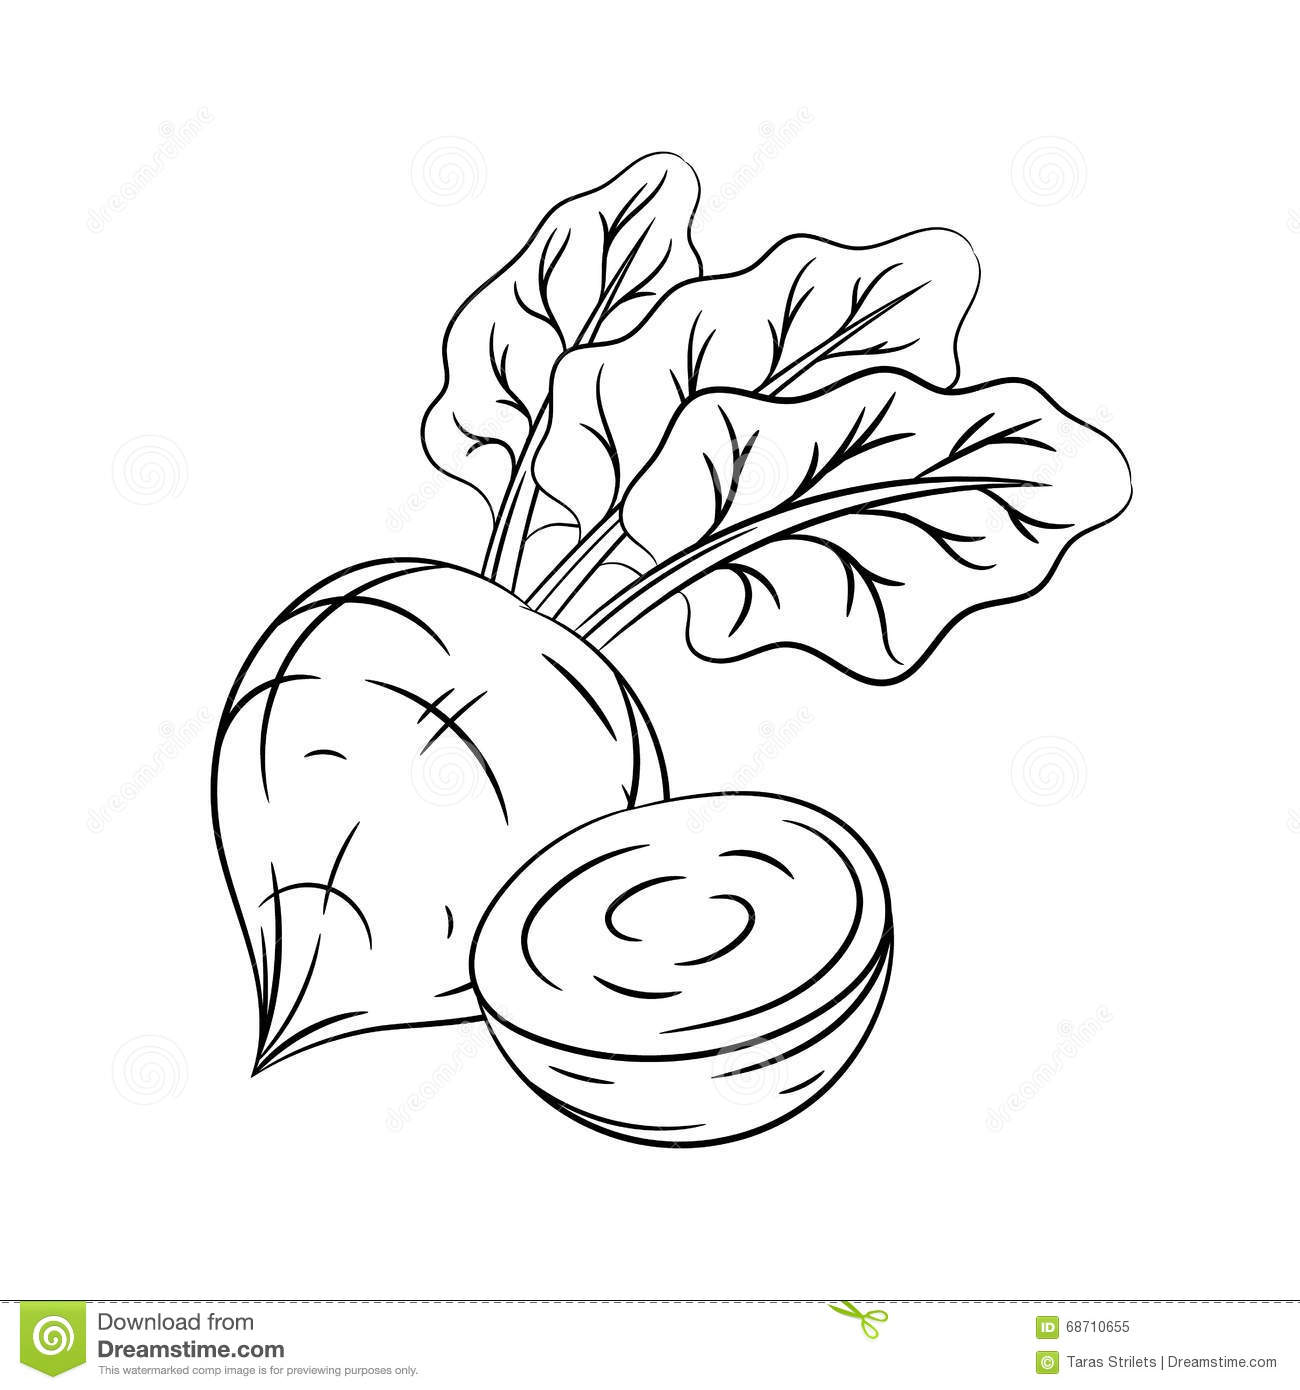 Hand Drawn Beetroot Sketches Stock Vector - Illustration of ... for Drawing Beetroot  104xkb